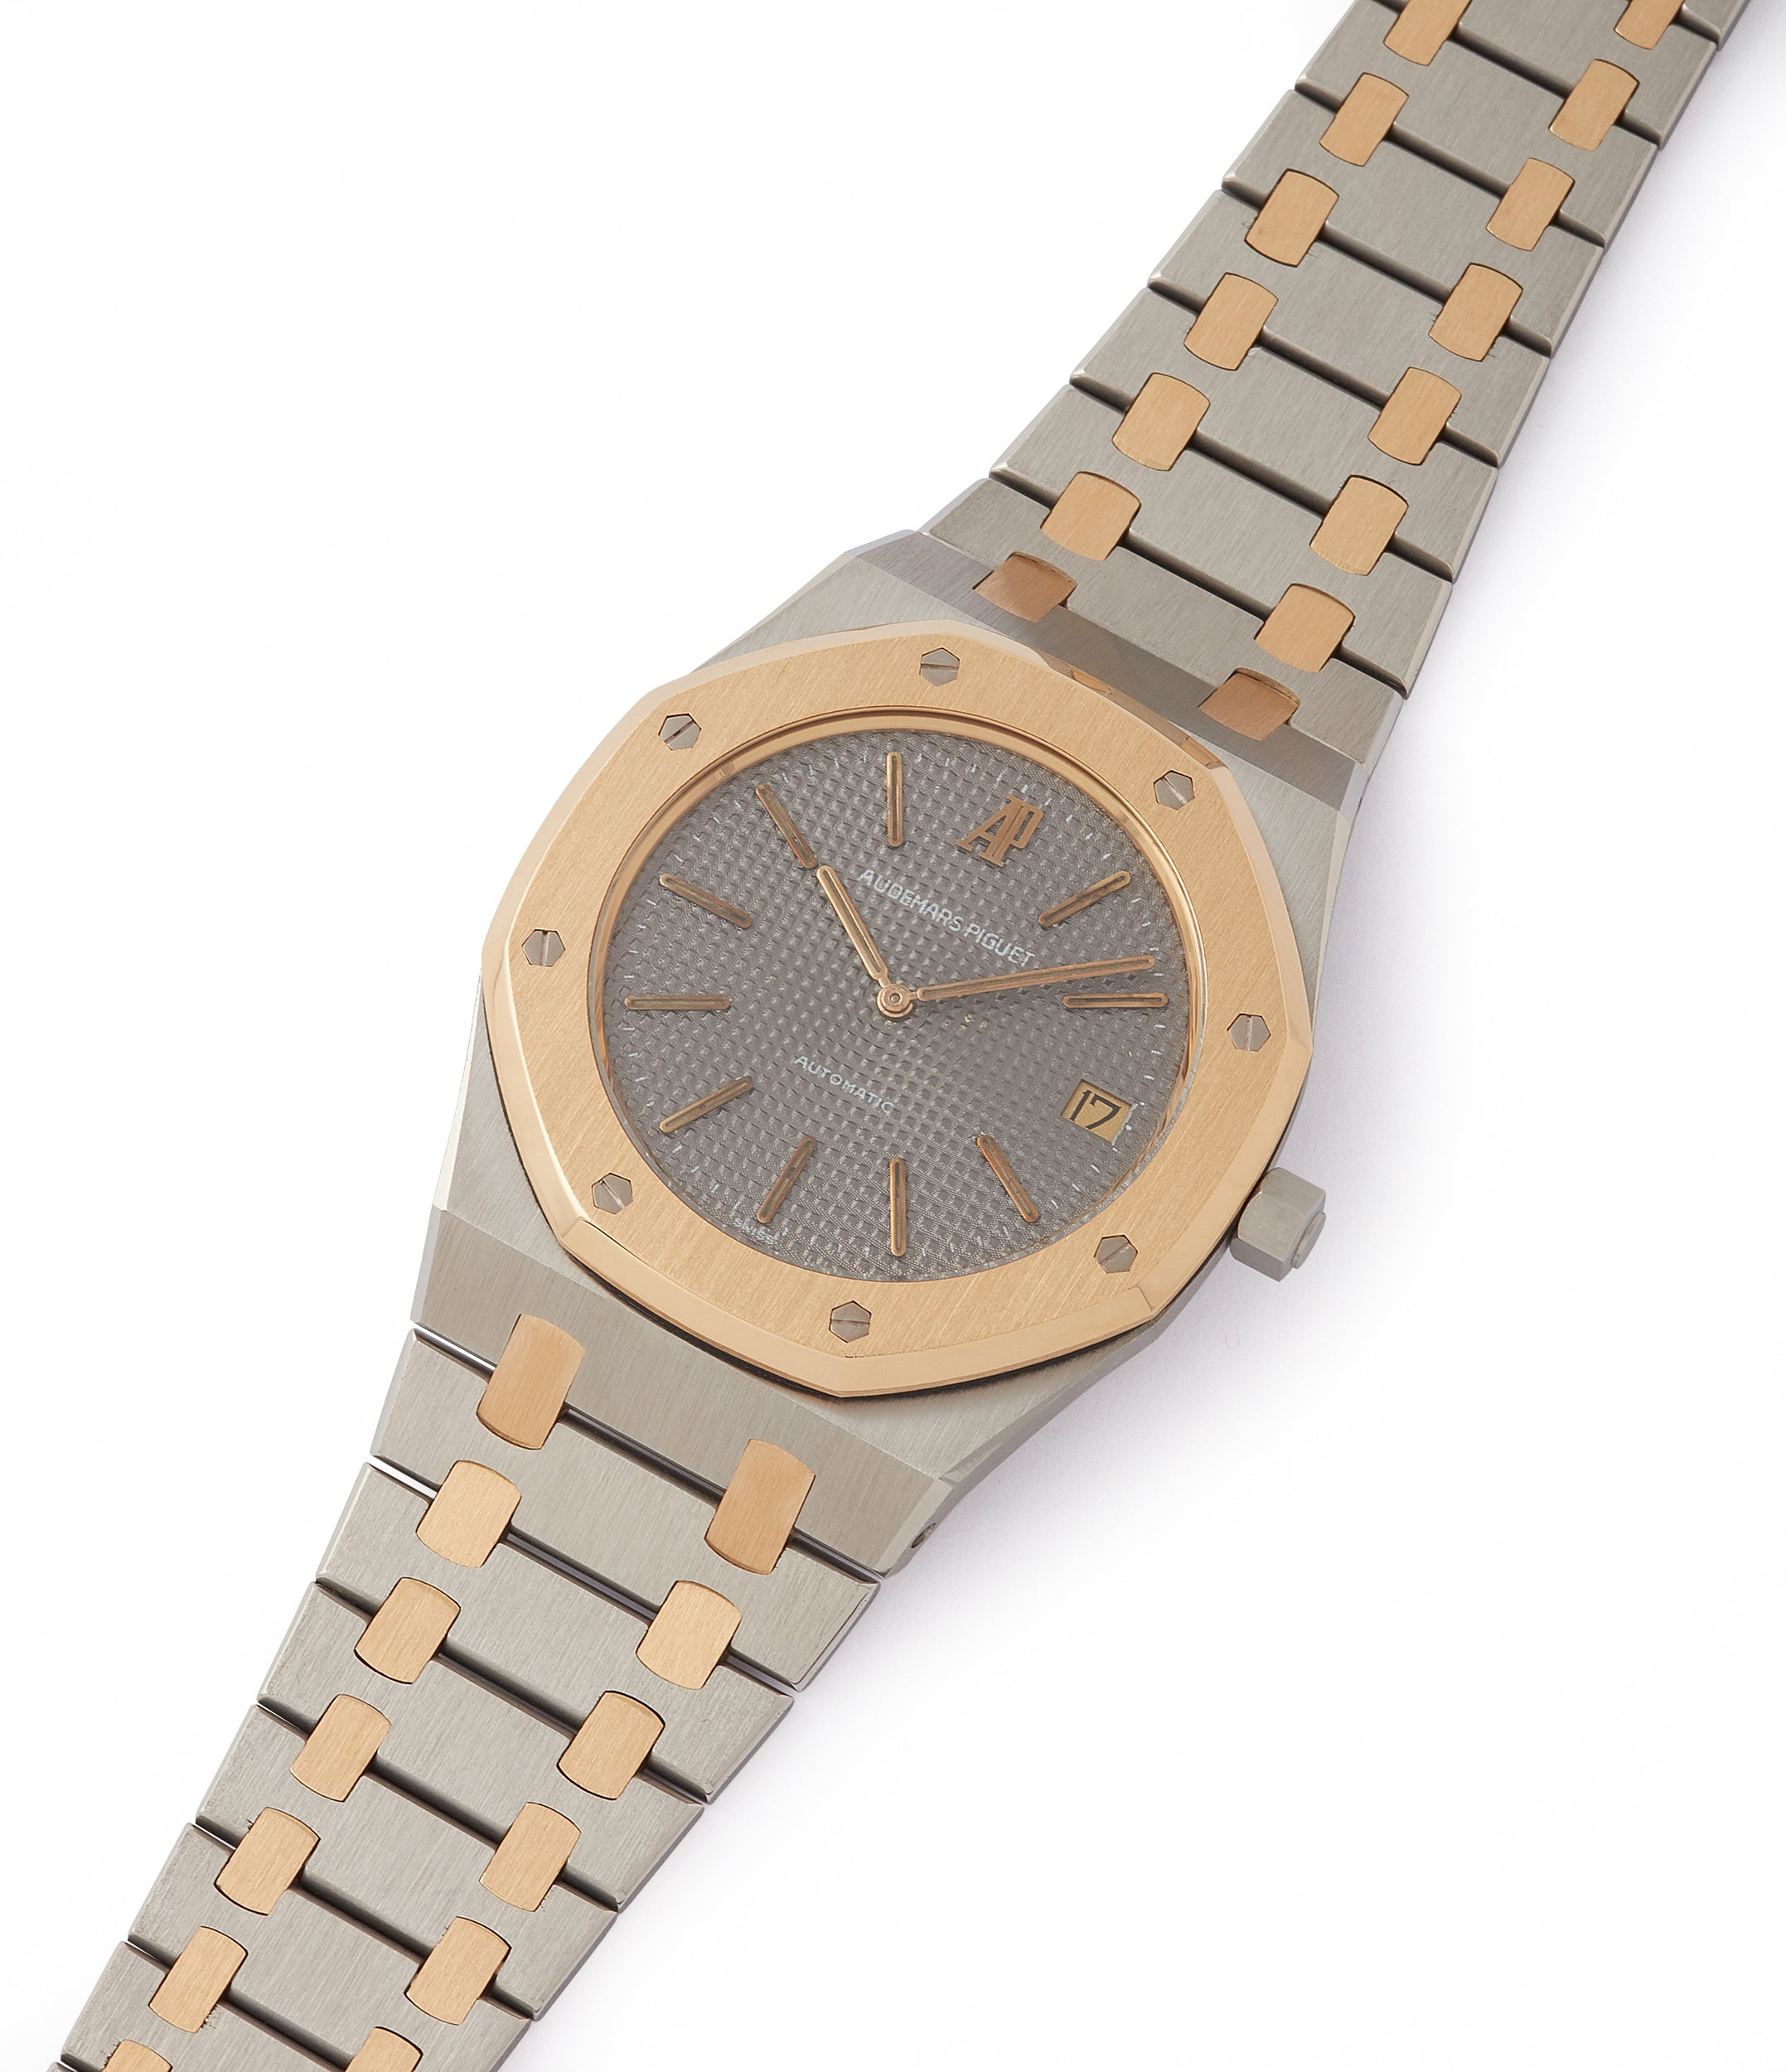 for sale vintage Audemars Piguet Royal Oak 5402SA steel gold bi-metal sports watch for sale online at A Collected Man London UK specialist of rare watches